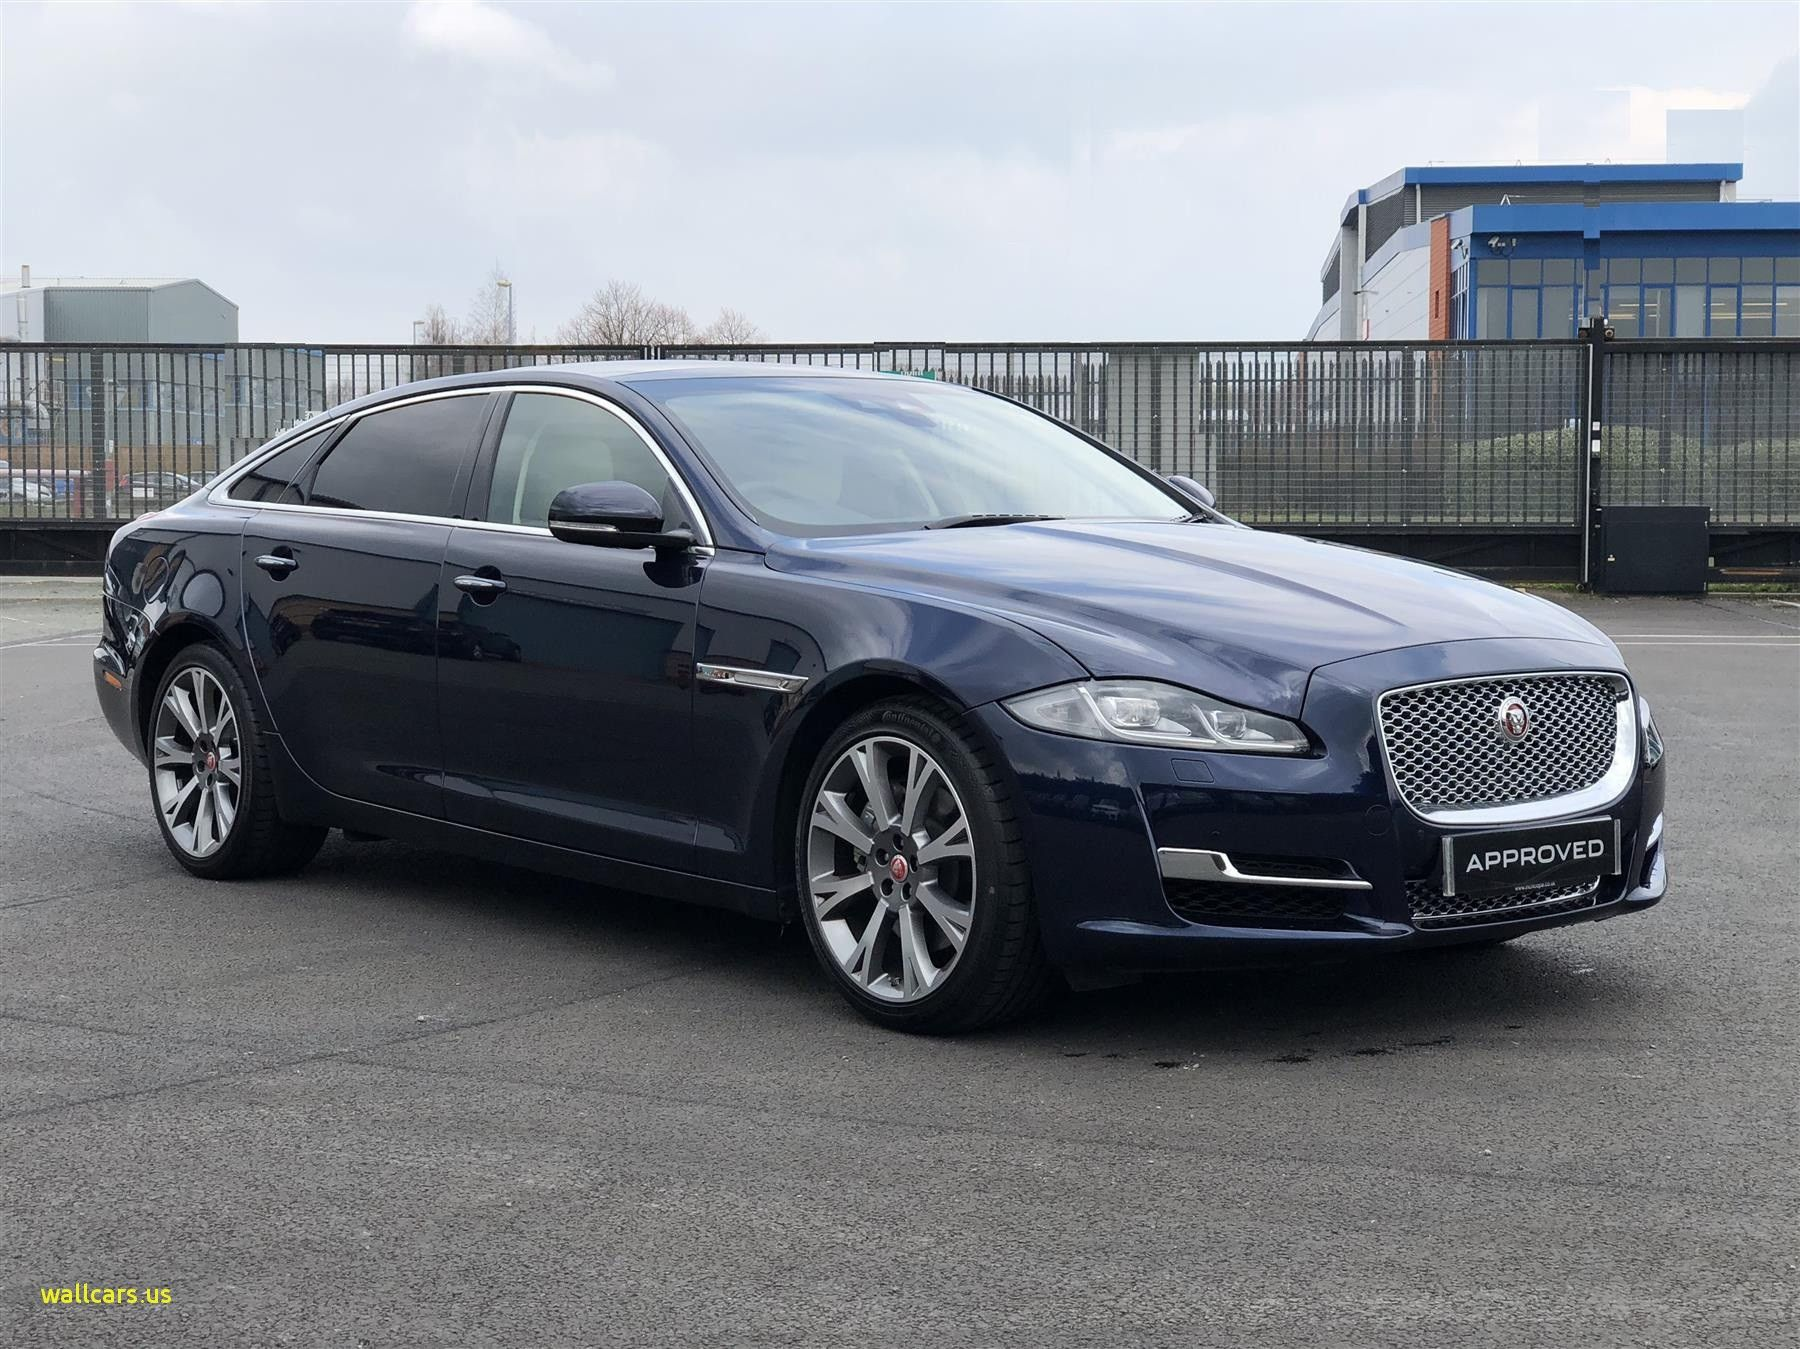 Beautiful Jaguar Xf 2019 Price Jaguar Mazda Audi